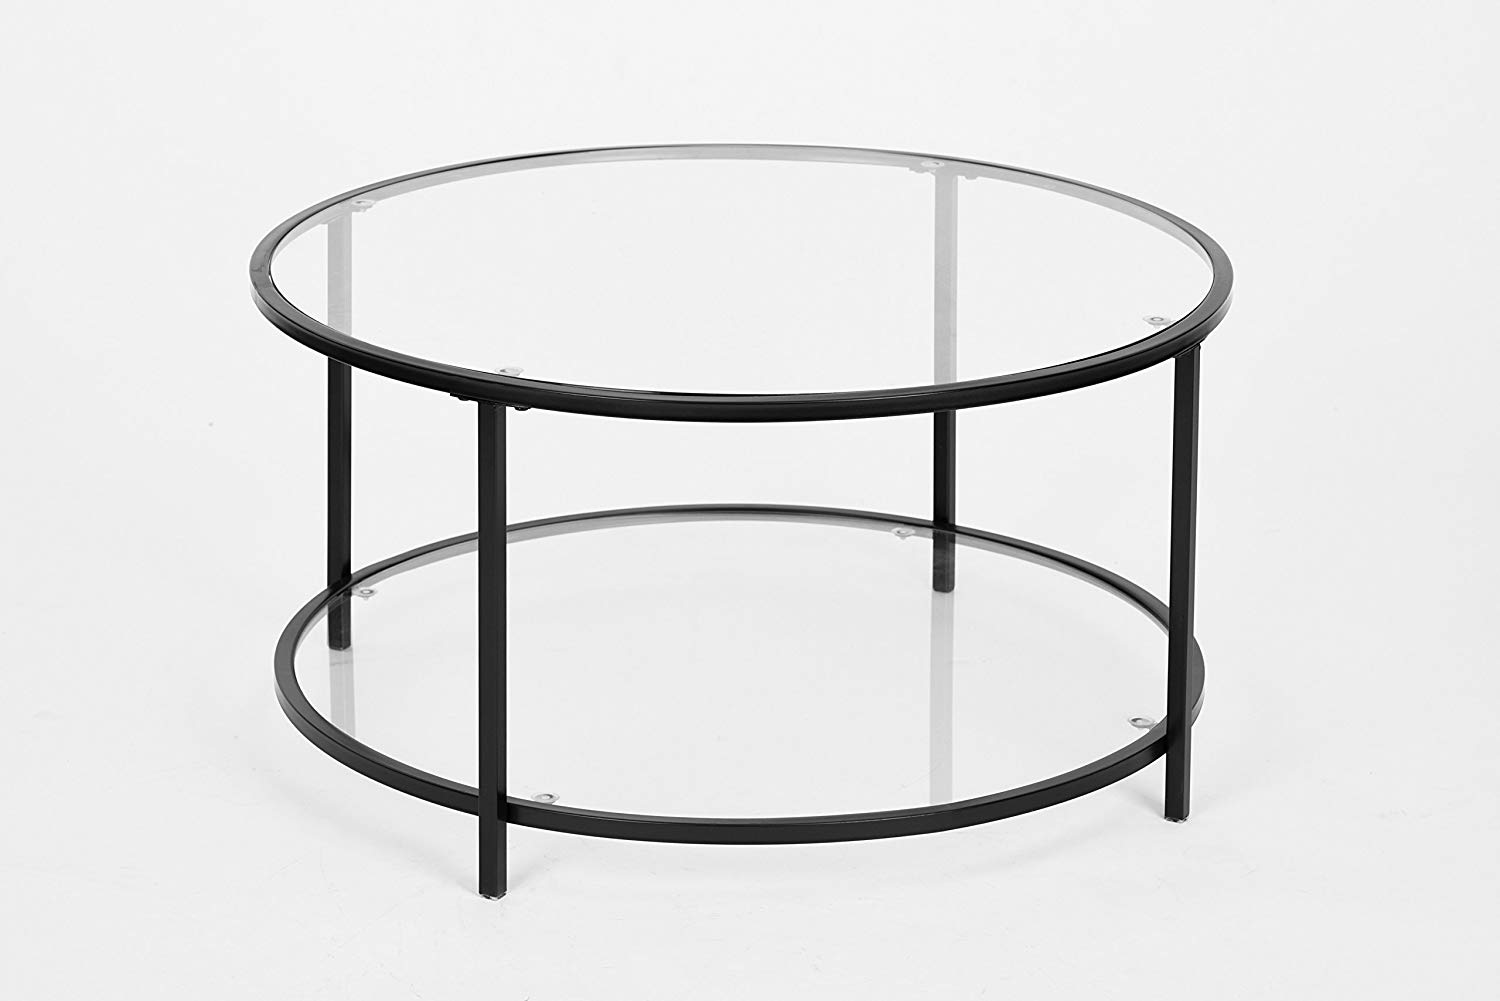 black finish glass tier modern round coffee table winsome wood cassie accent with top cappuccino kitchen dining tables for living room inch tablecloth pier one outdoor wicker